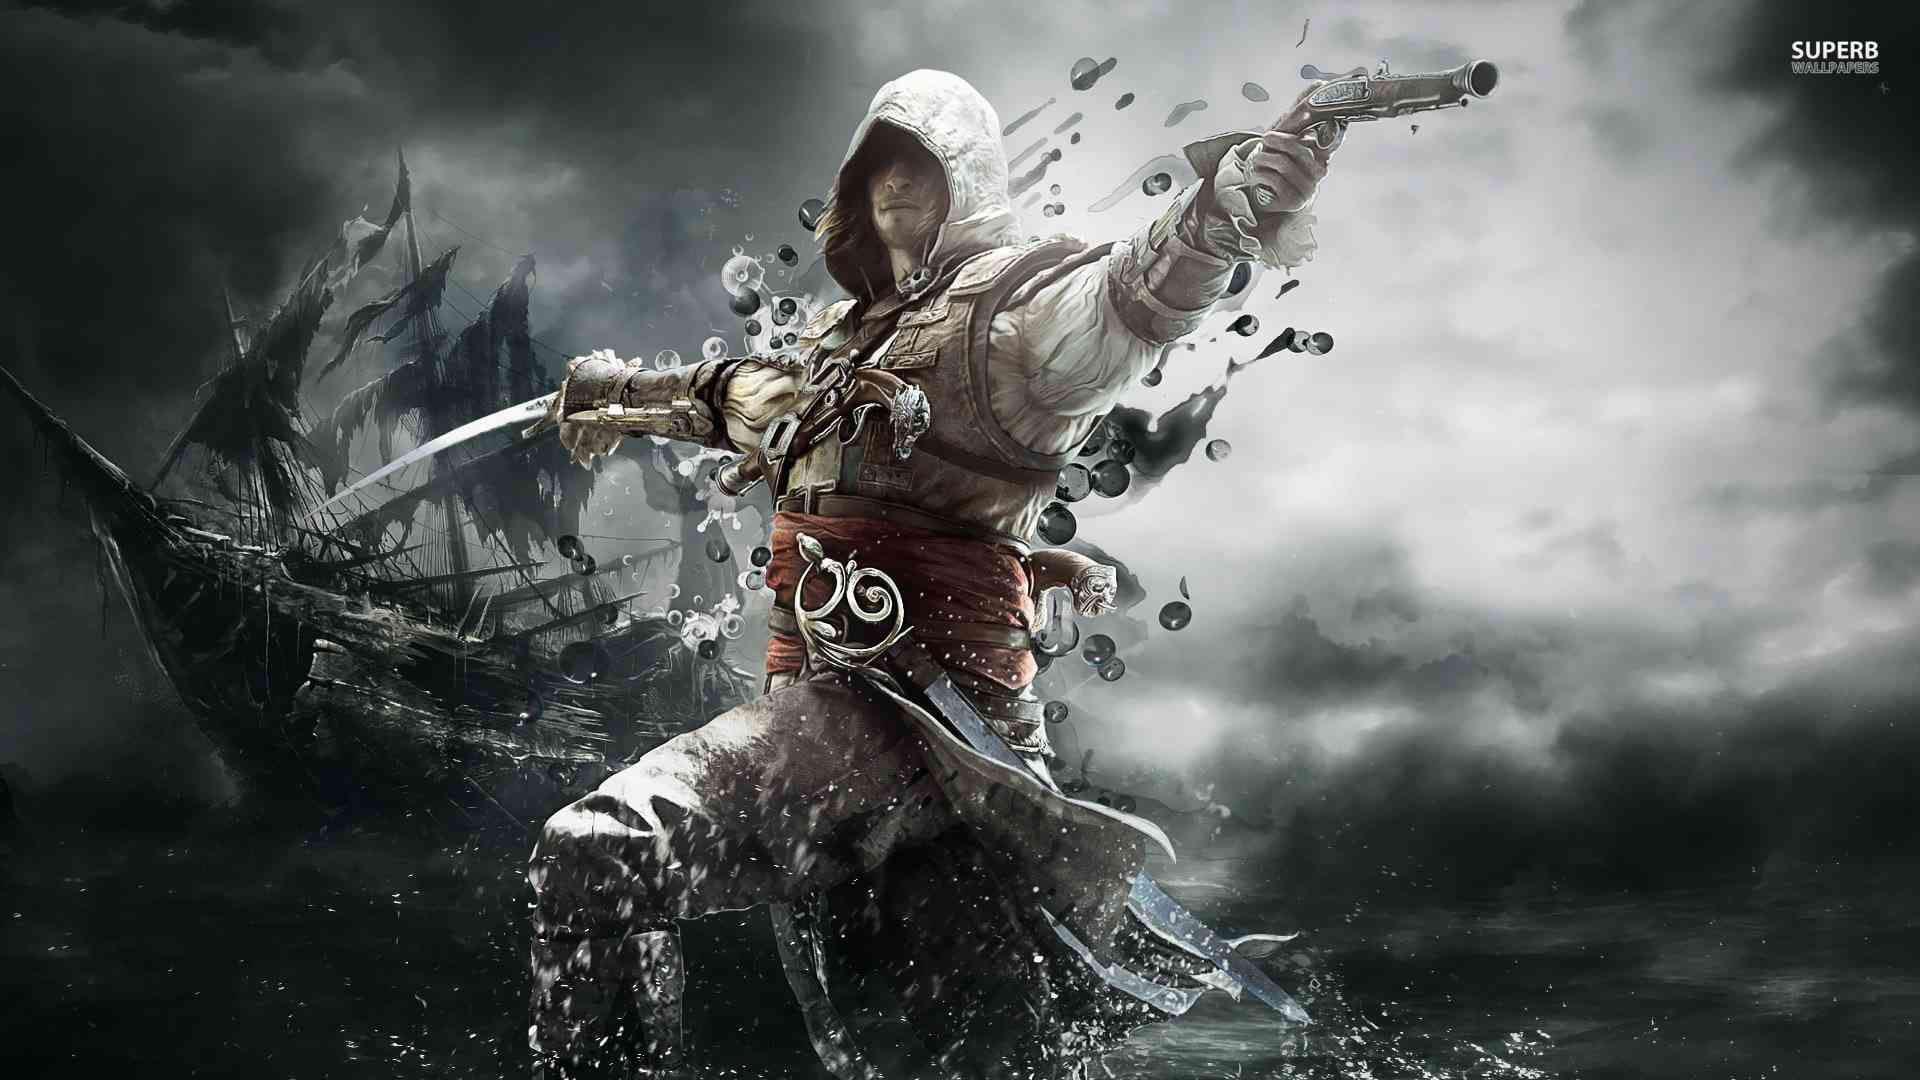 Canadian Online Gamers Edward Kenway